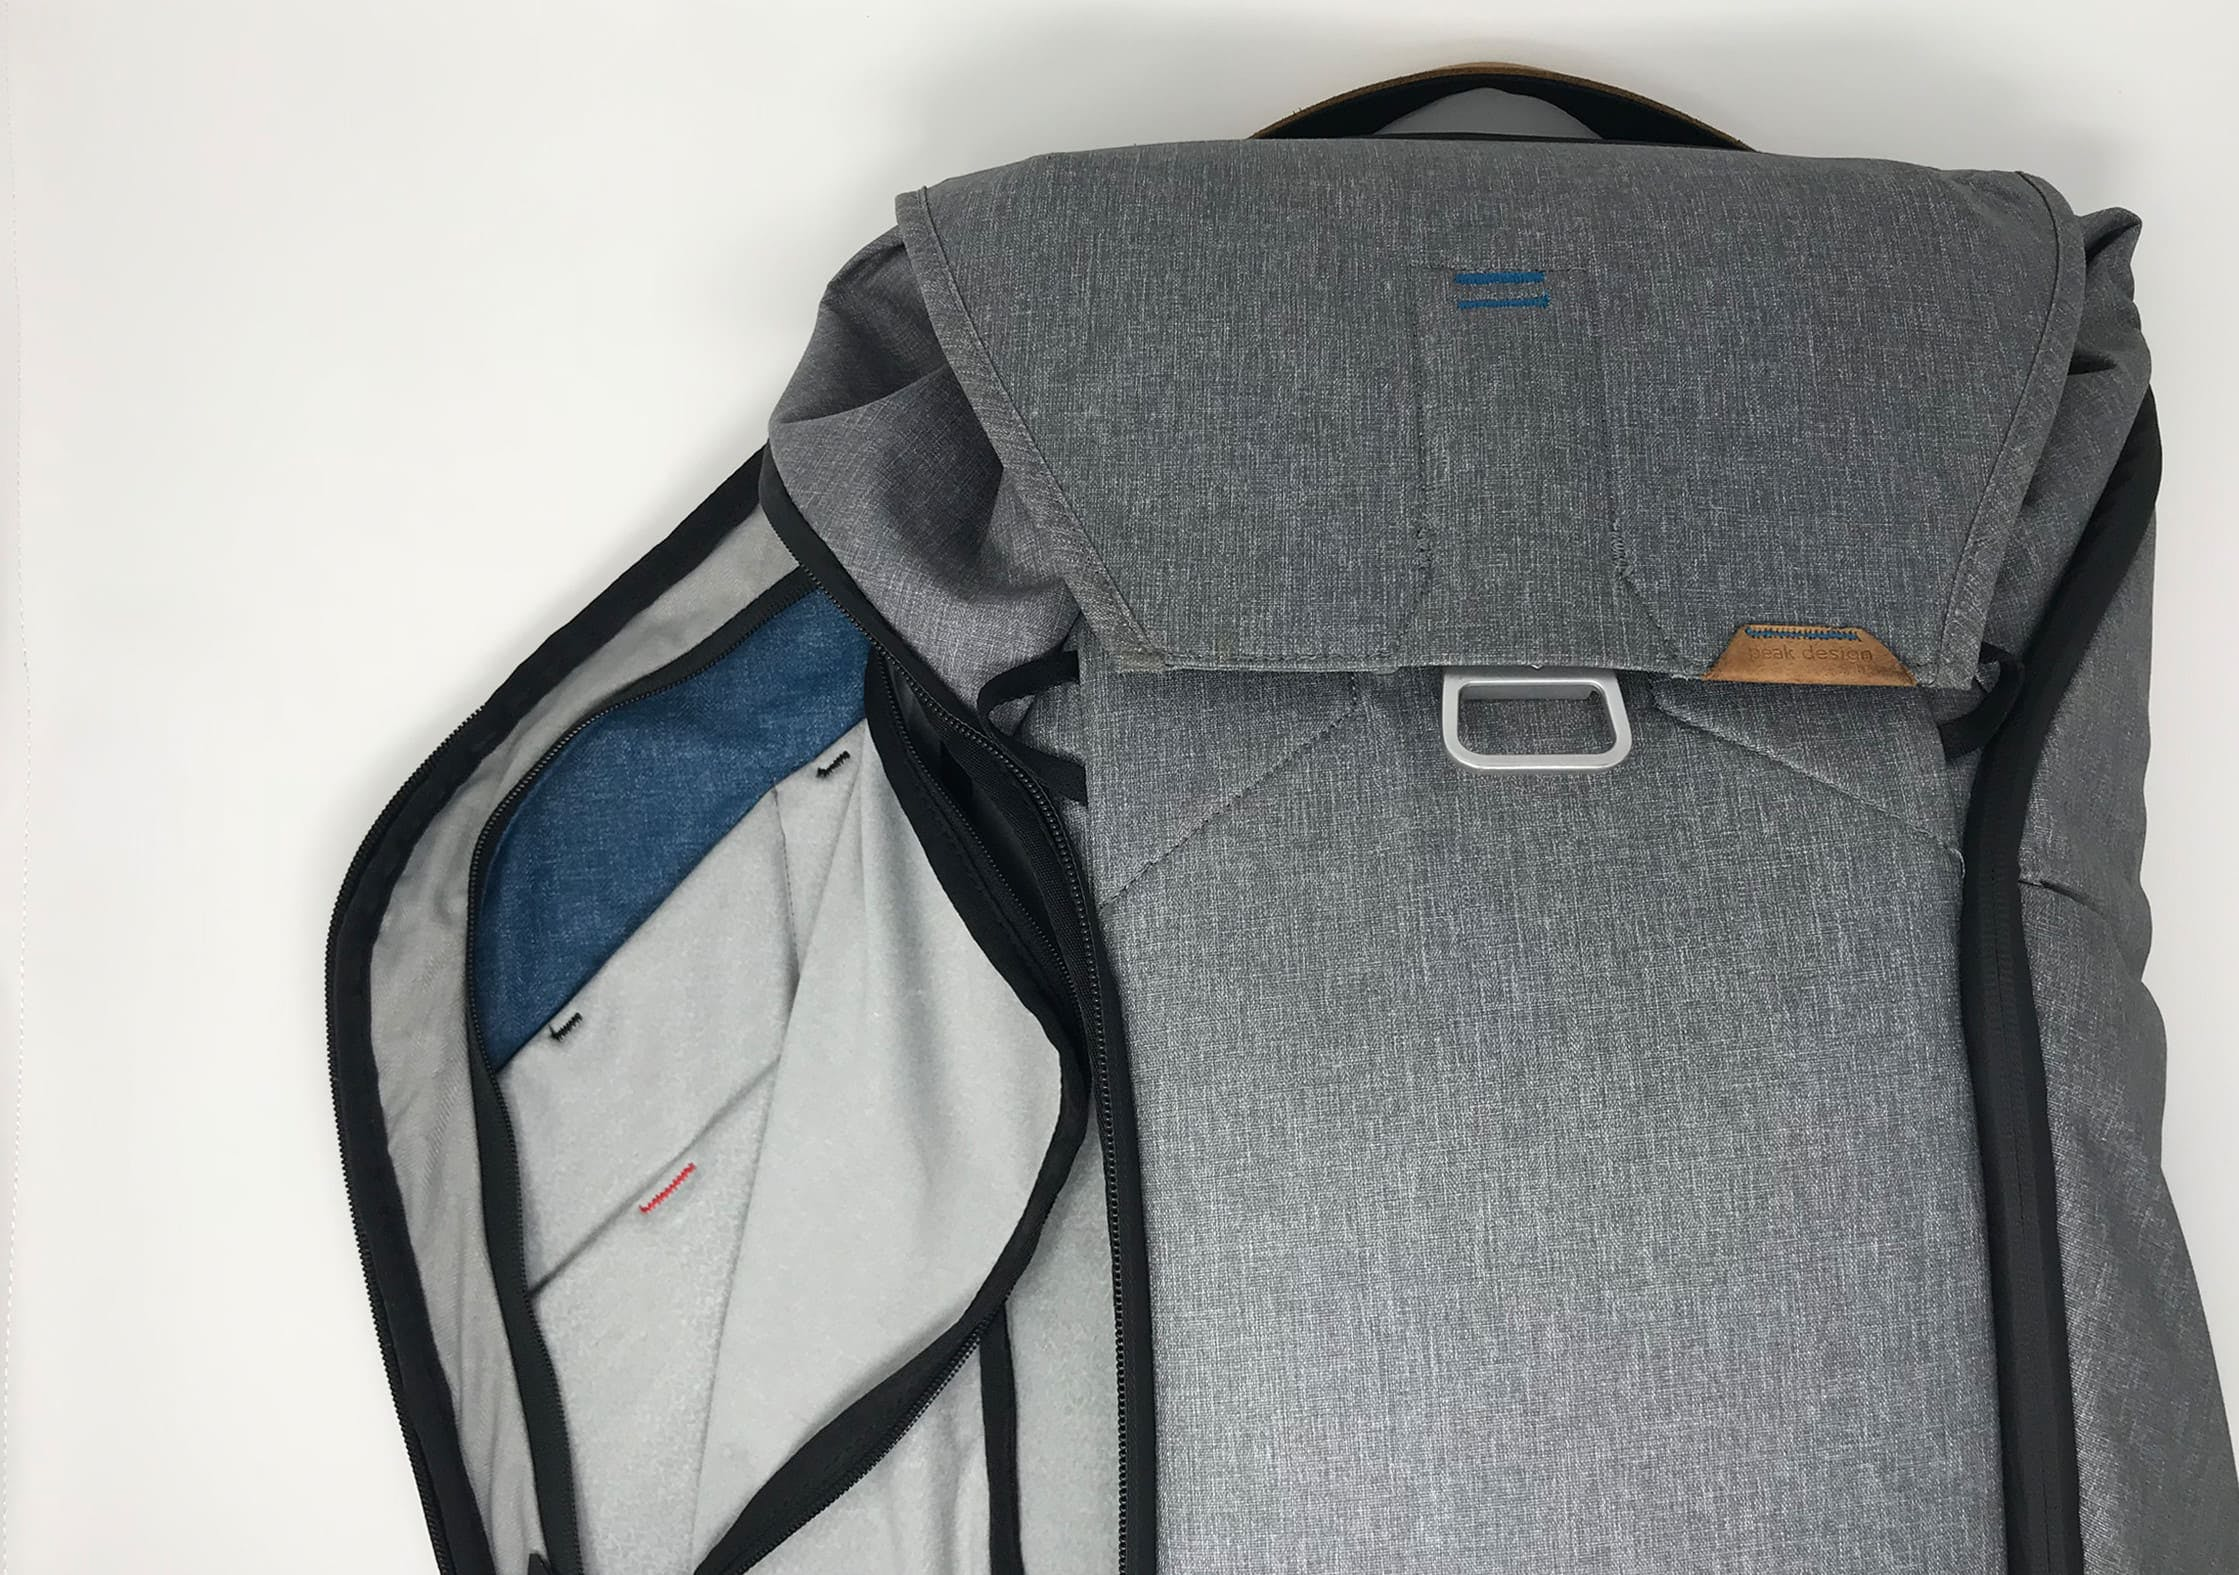 Peak Design Everyday Backpack internal pockets/